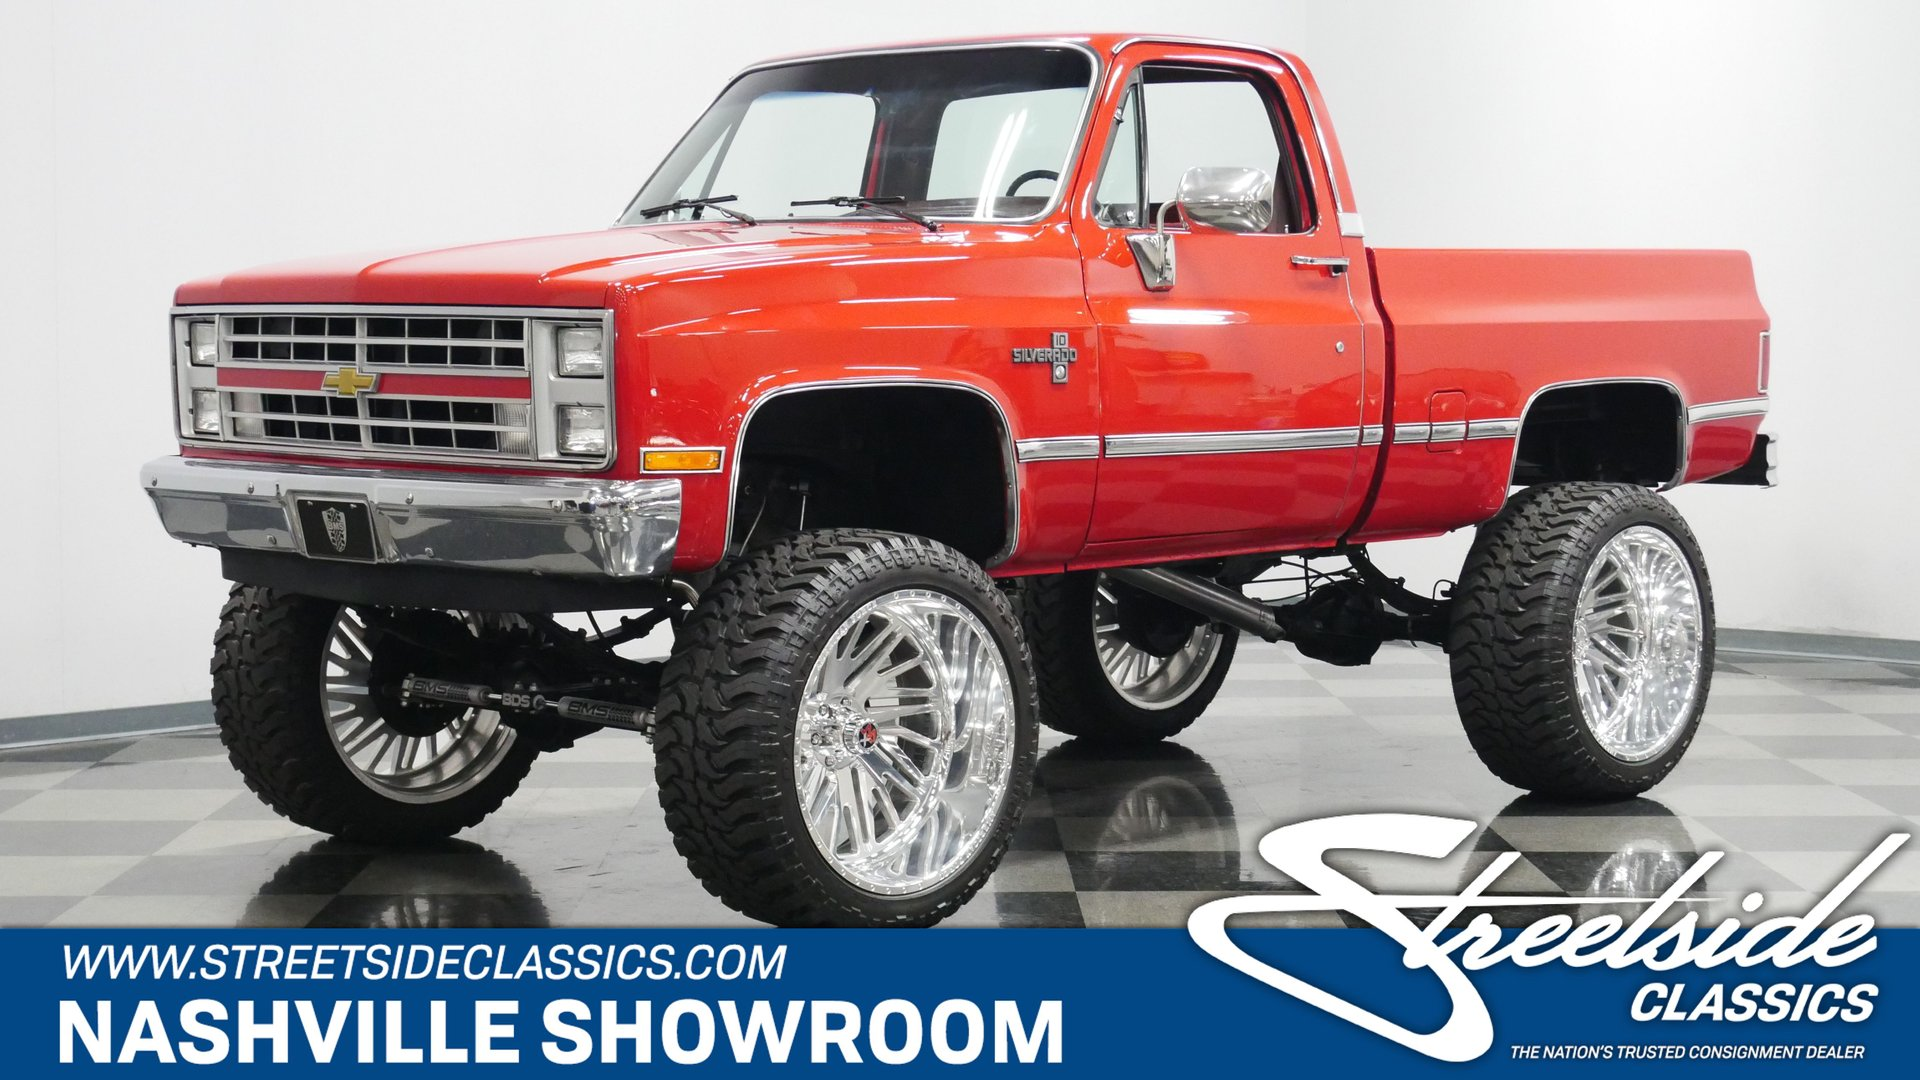 1985 Chevrolet K10 Classic Cars For Sale Streetside Classics The Nation S 1 Consignment Dealer